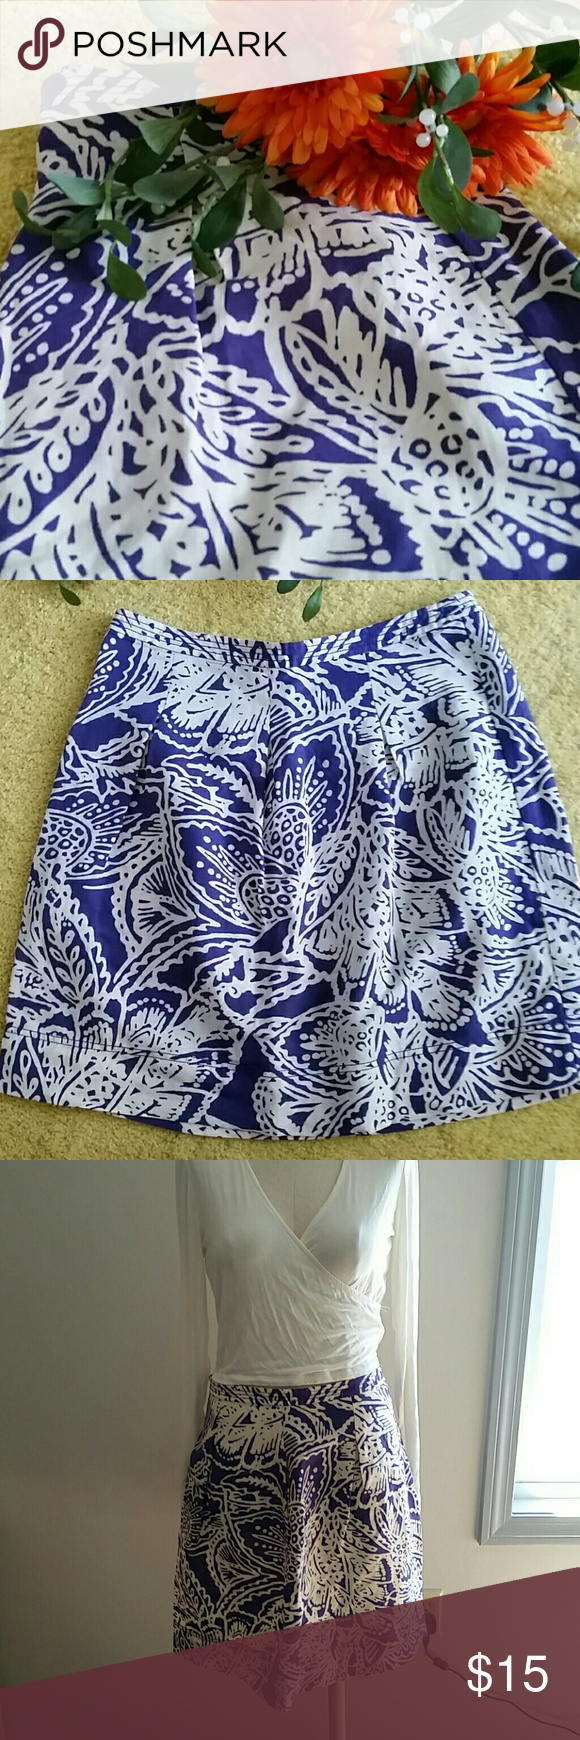 Lovely blue print skirt Just lovely blue cotton skirt from Loft. Measures 20 inches long. Front pleats and back zip closure. Barely used, in great condition. LOFT Skirts